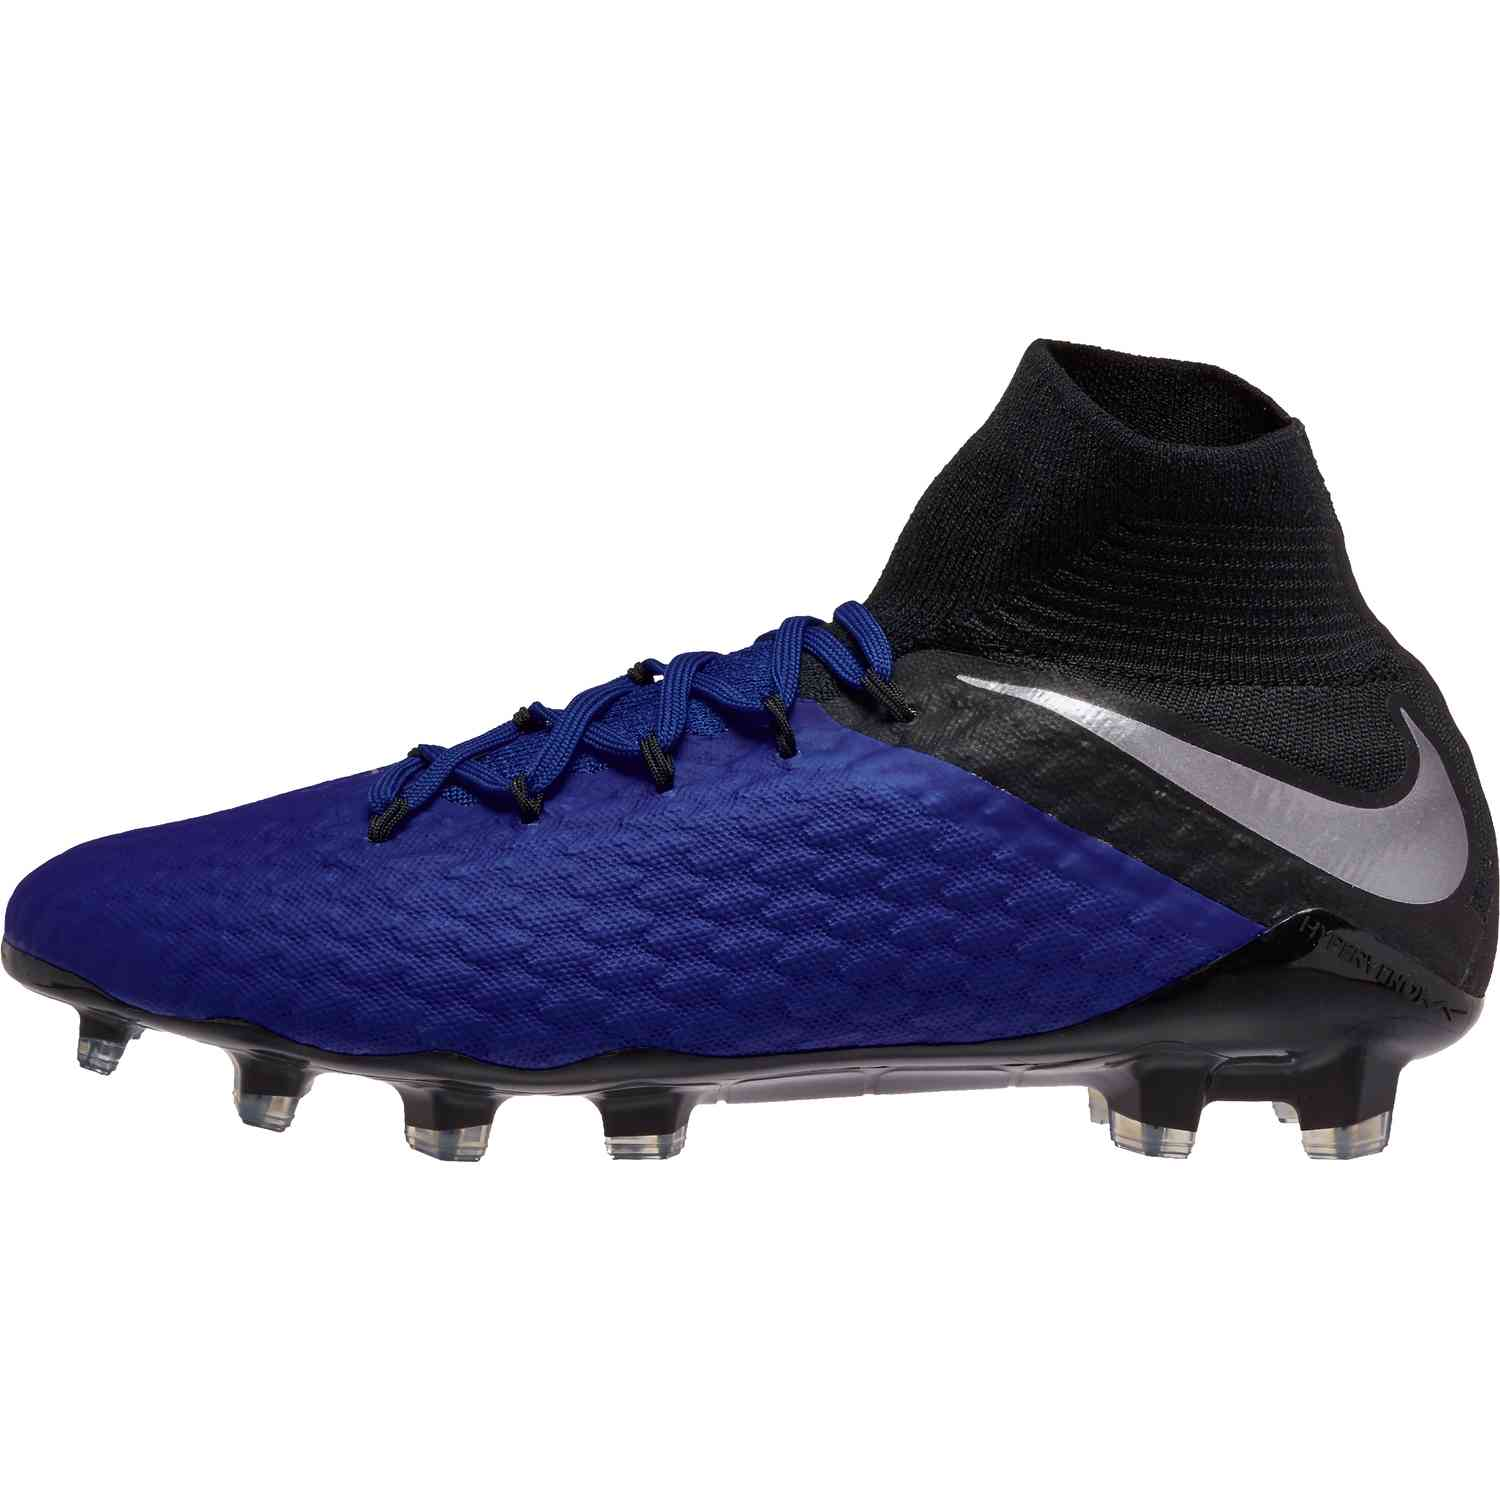 huge discount 1eba4 b5815 Nike Phantom 3 Pro DF FG - Racer Blue/Metallic Silver/Black ...